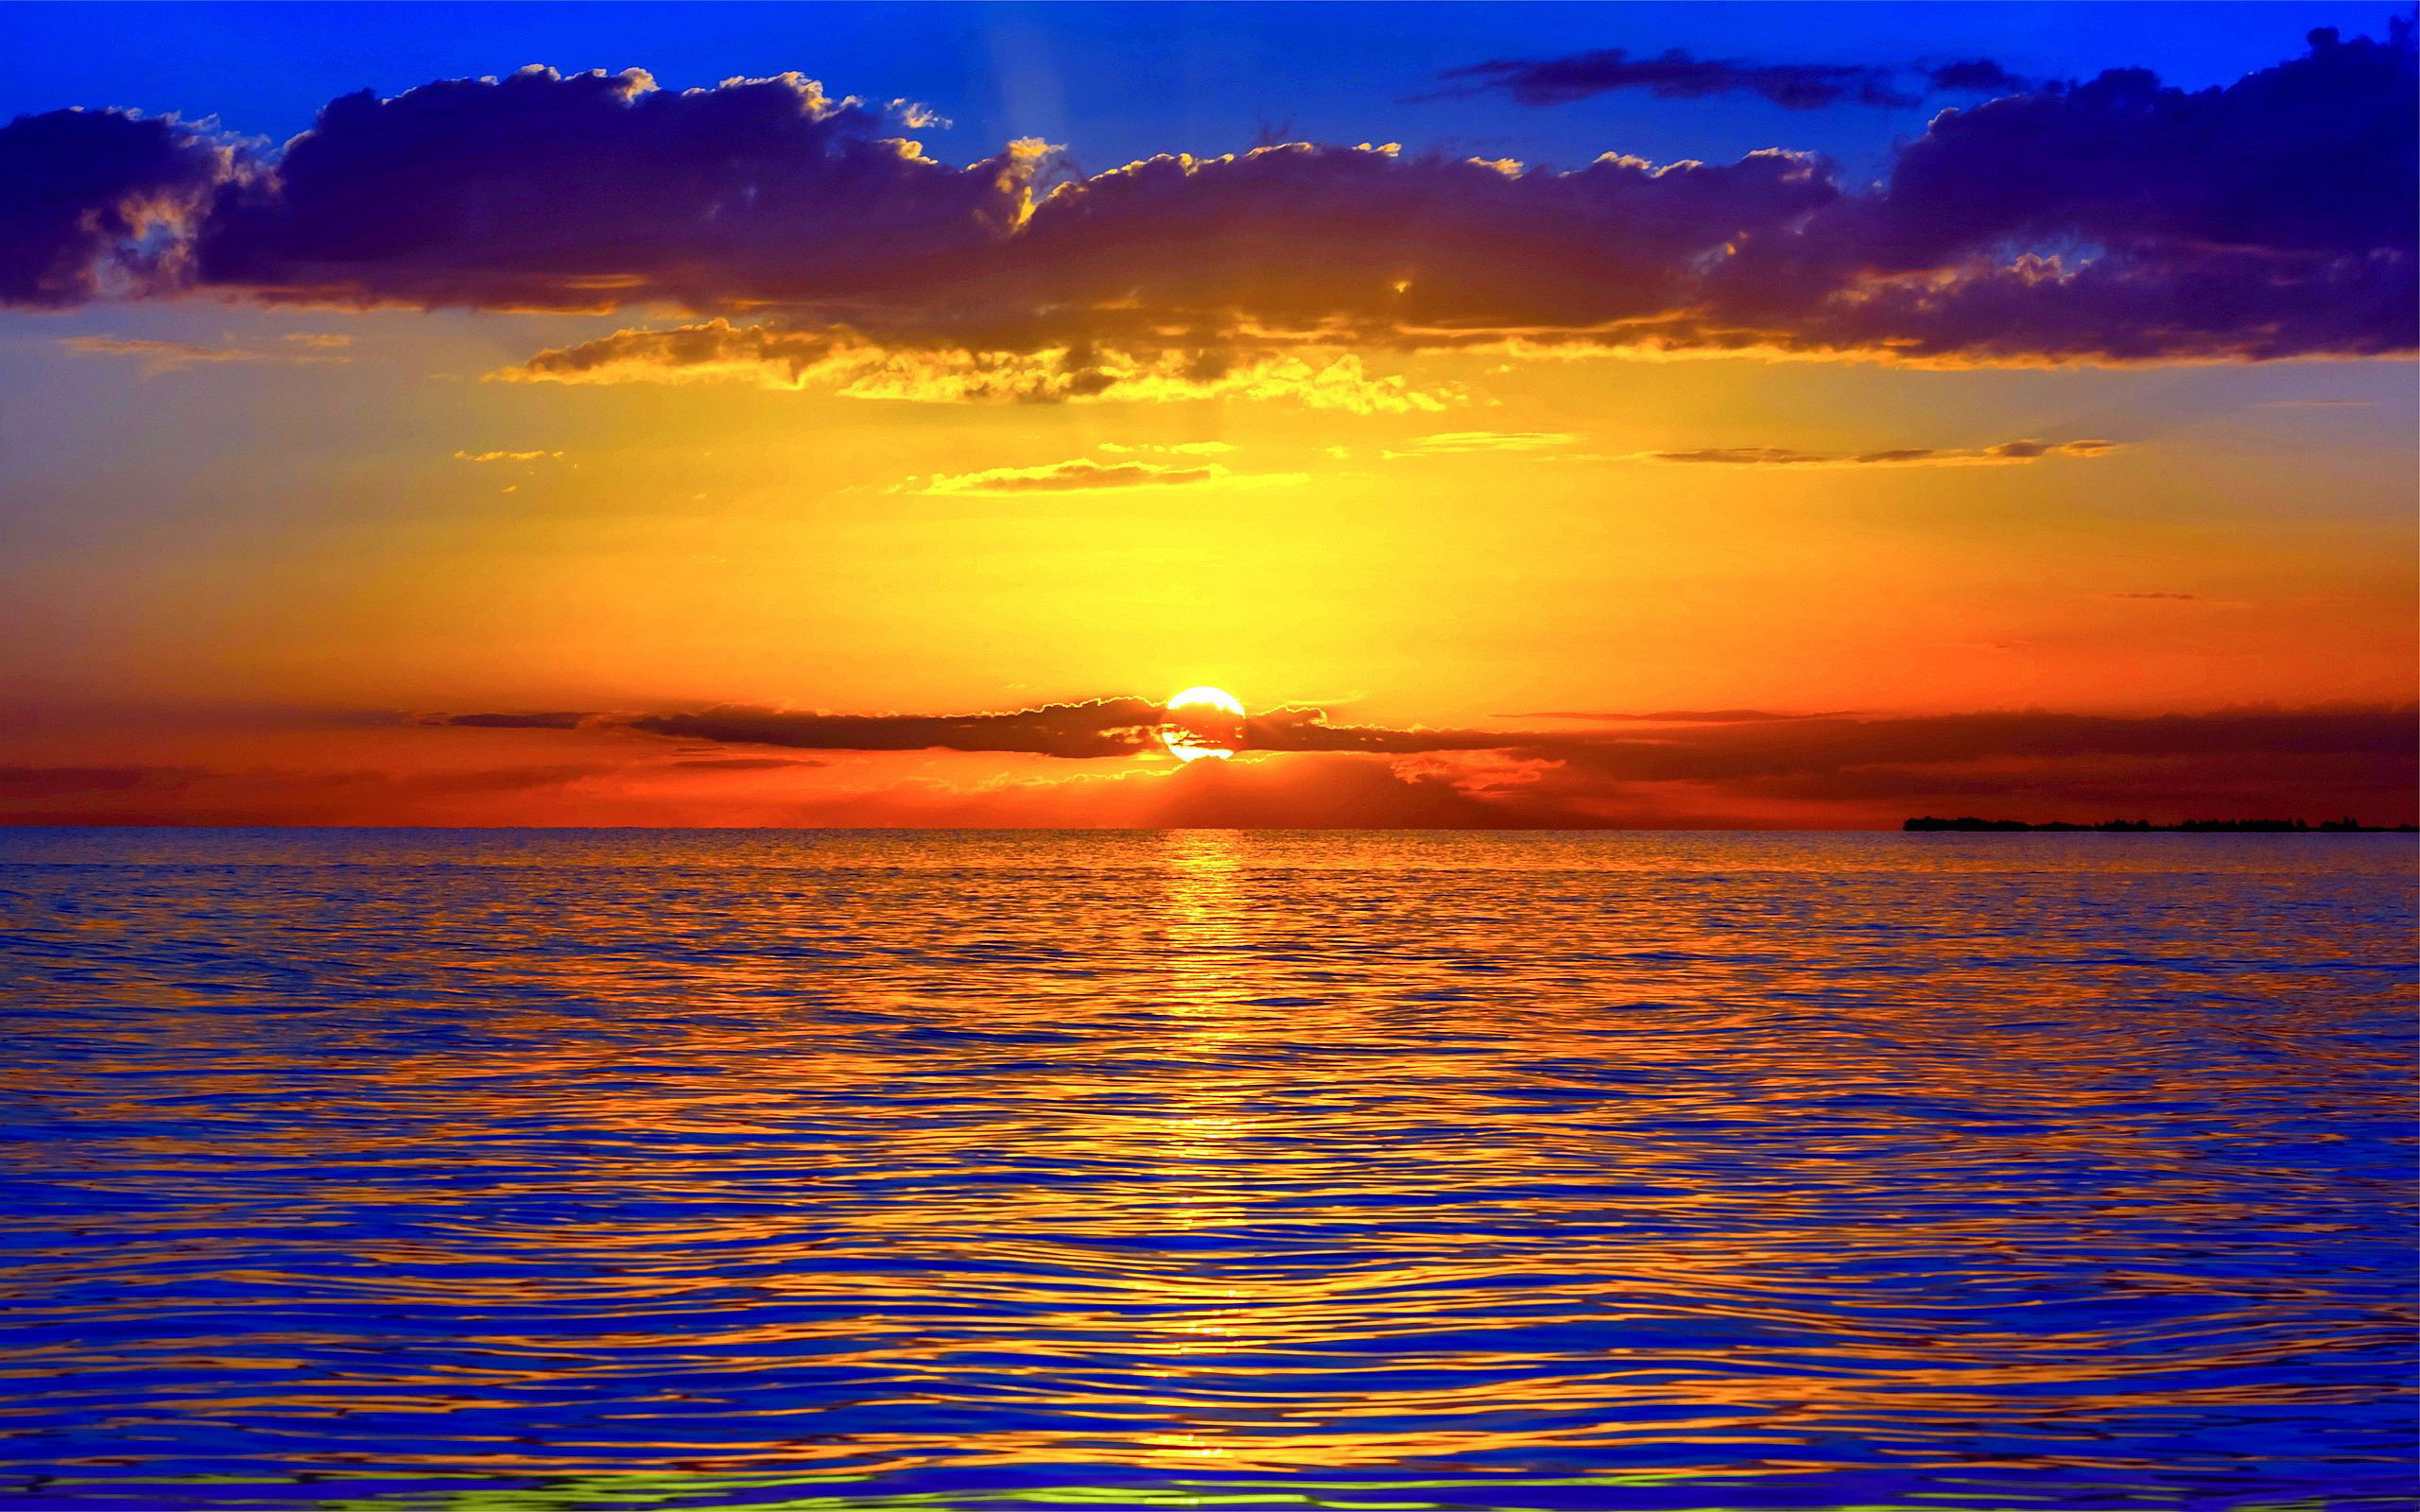 Wallpapers Collection «Sunset Wallpapers»